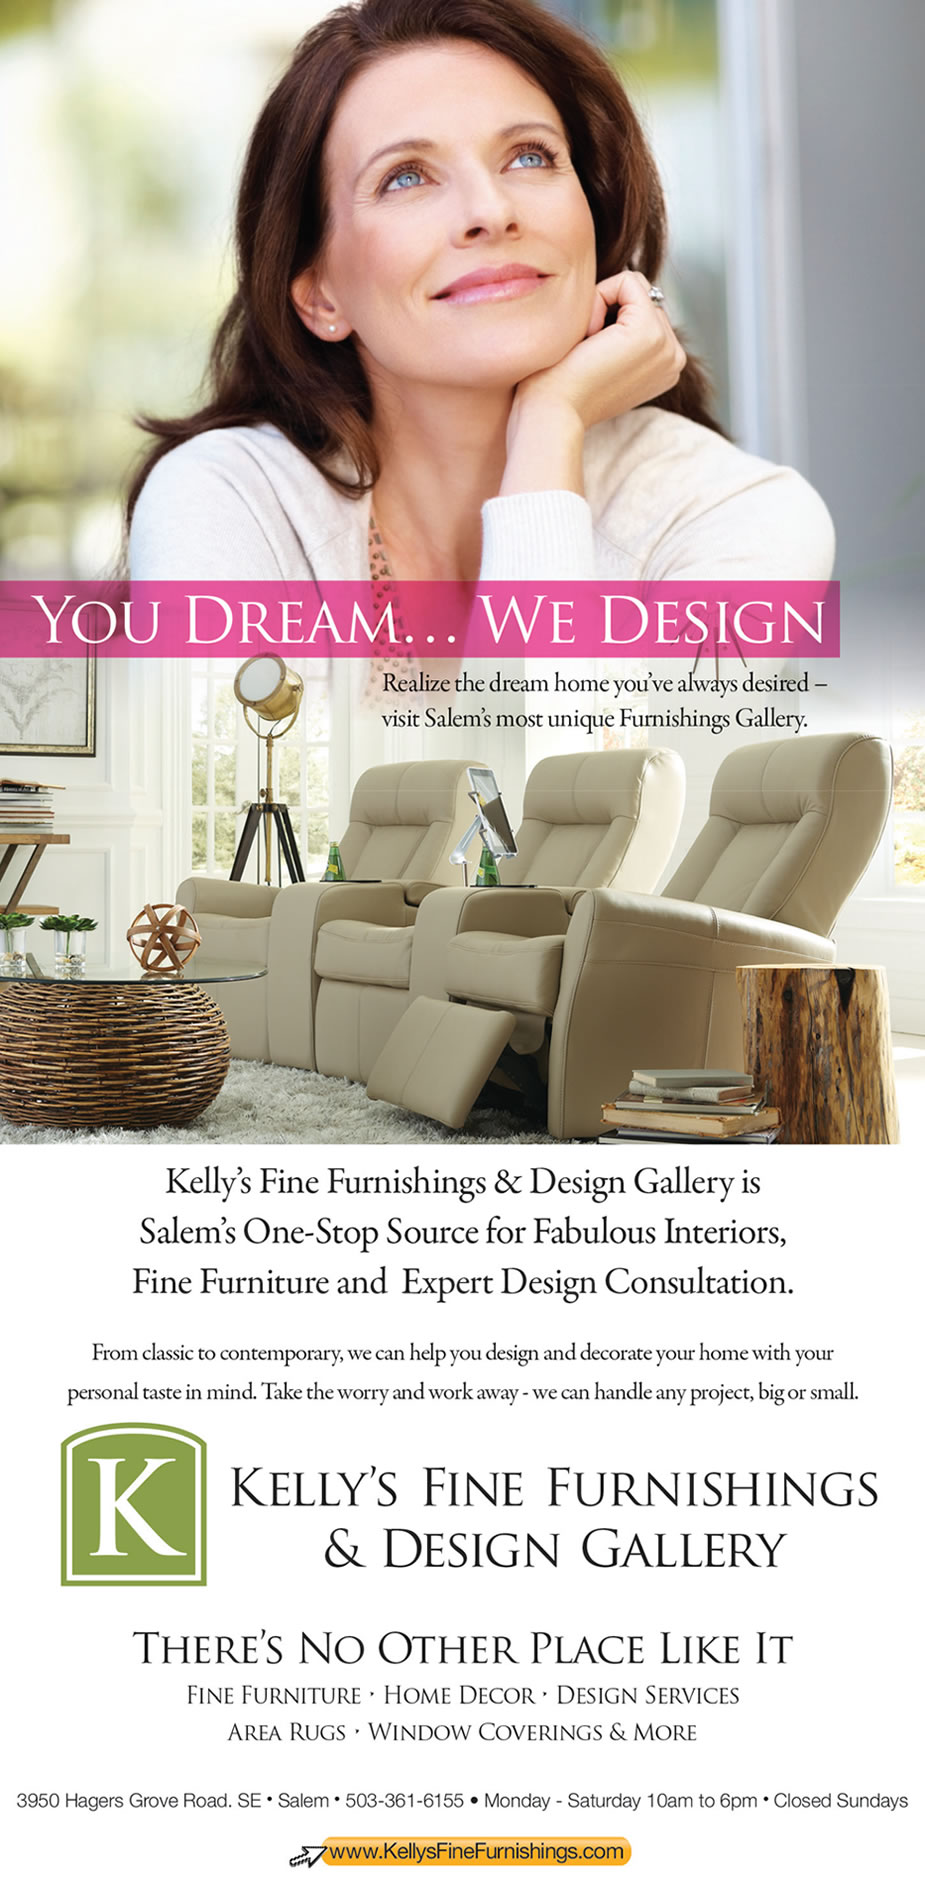 Kelly's Fine Furnishings & Design Gallery